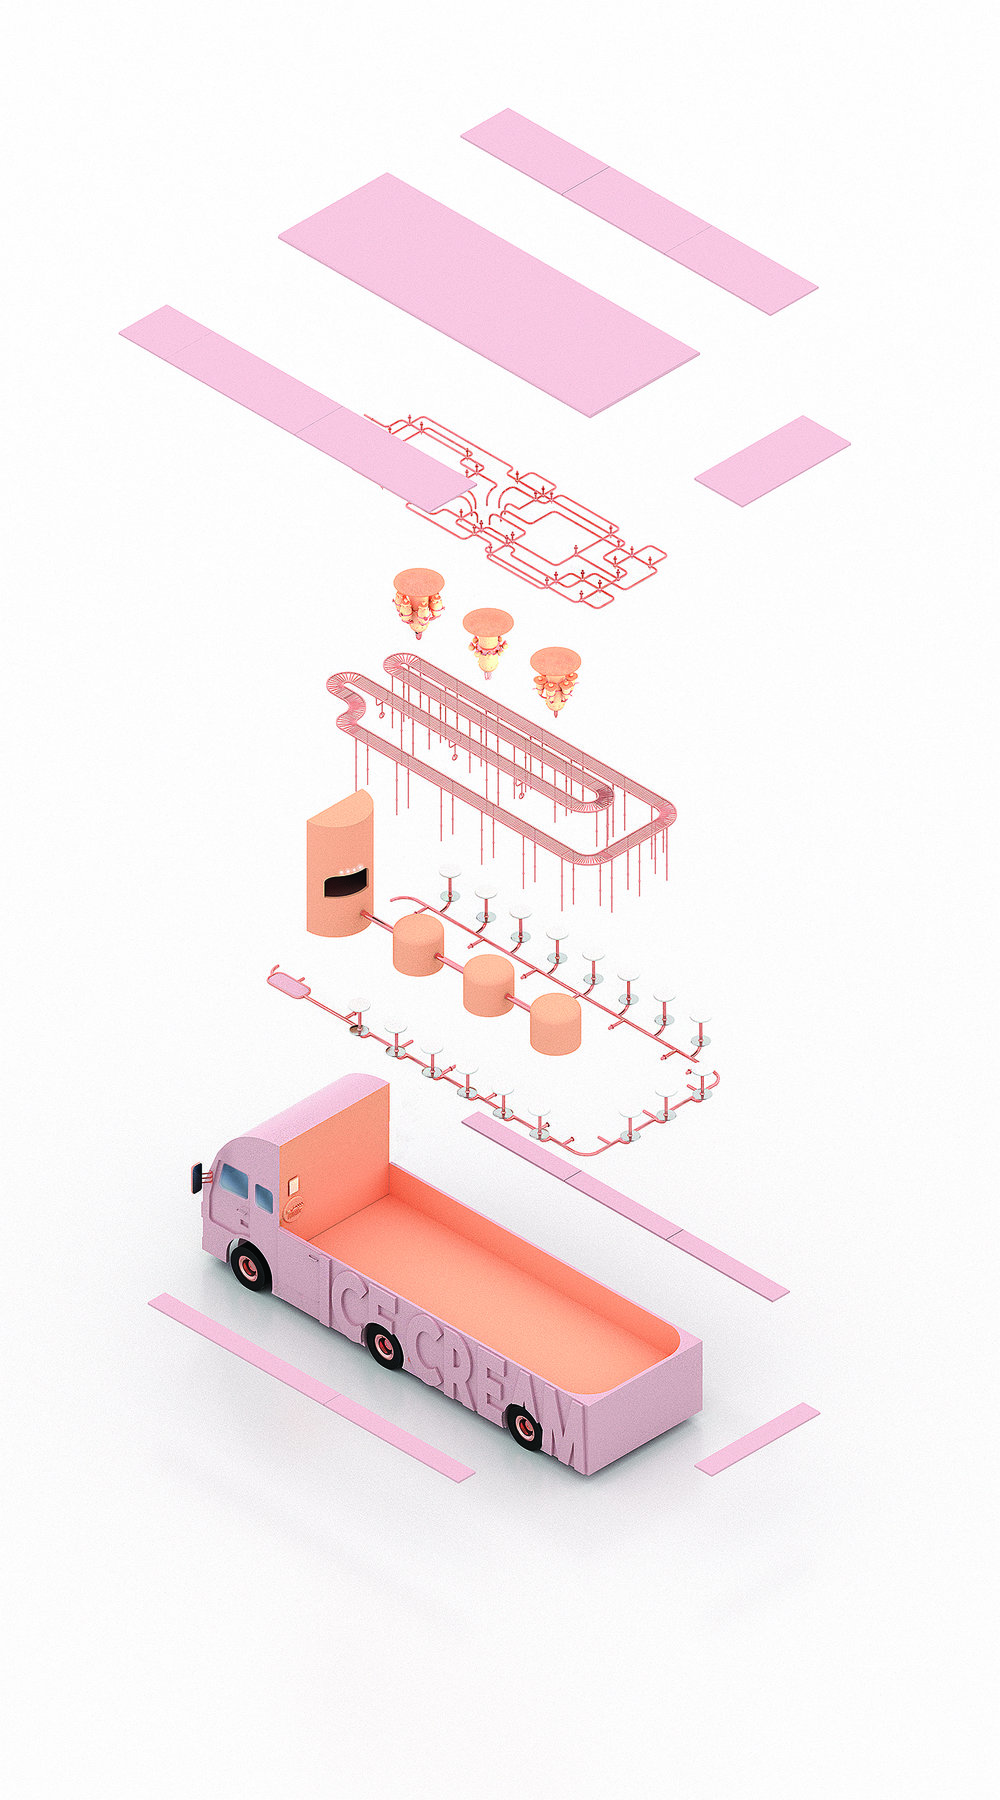 - My design proposal is an ice cream truck converted into a portable liquid nitrogen ice cream factory that would allow people to experience getting their favorite dessert in a new unique way. One of the most important aspects of -320ºF is the fact that ice cream making becomes some sort of a performance for the customers, where they get to see the whole process from the beginning to the end. As a huge ice cream fan, I could not ignore the new liquid nitrogen trend, which influenced my design approach for -320ºF (nitrogen's boiling temperature) and has already become a craze that is now used in all kinds of places from fancy restaurants to small cafes. Even though molecular gastronomy movement has been on the scene for quite a while, people of all ages never stop getting excited about clouds of smoke coming out of their food and I wanted to make this excitement part of their experience in my space.Inspired by the conveyor belts you can see in many sushi restaurants, I decided to incorporate it in my design and take it to the next level. For each part of the ice-cream making process (mixing, freezing, topping) -320ºF would have a station, through which the conveyor would take the empty plates in order for the ice cream to be made and delivered to customers. Orders would be placed on one side of the truck, where the worker would have to simply choose the right flavor and toppings on a screen attached to the nearest wall. The command goes to conveyor belt system and a new empty plate starts its journey to the first station, where liquid cream with the chosen flavor gets poured into it. At the next station this cream instantly gets frozen with liquid nitrogen and the ready-to-eat ice cream scoop moves to the last station for toppings. Meanwhile the customer would take one of the seats connected to three external sides of the truck and pick up their ice cream from the conveyor when it arrives.Even though the space would get enough natural light during the day, I decided 